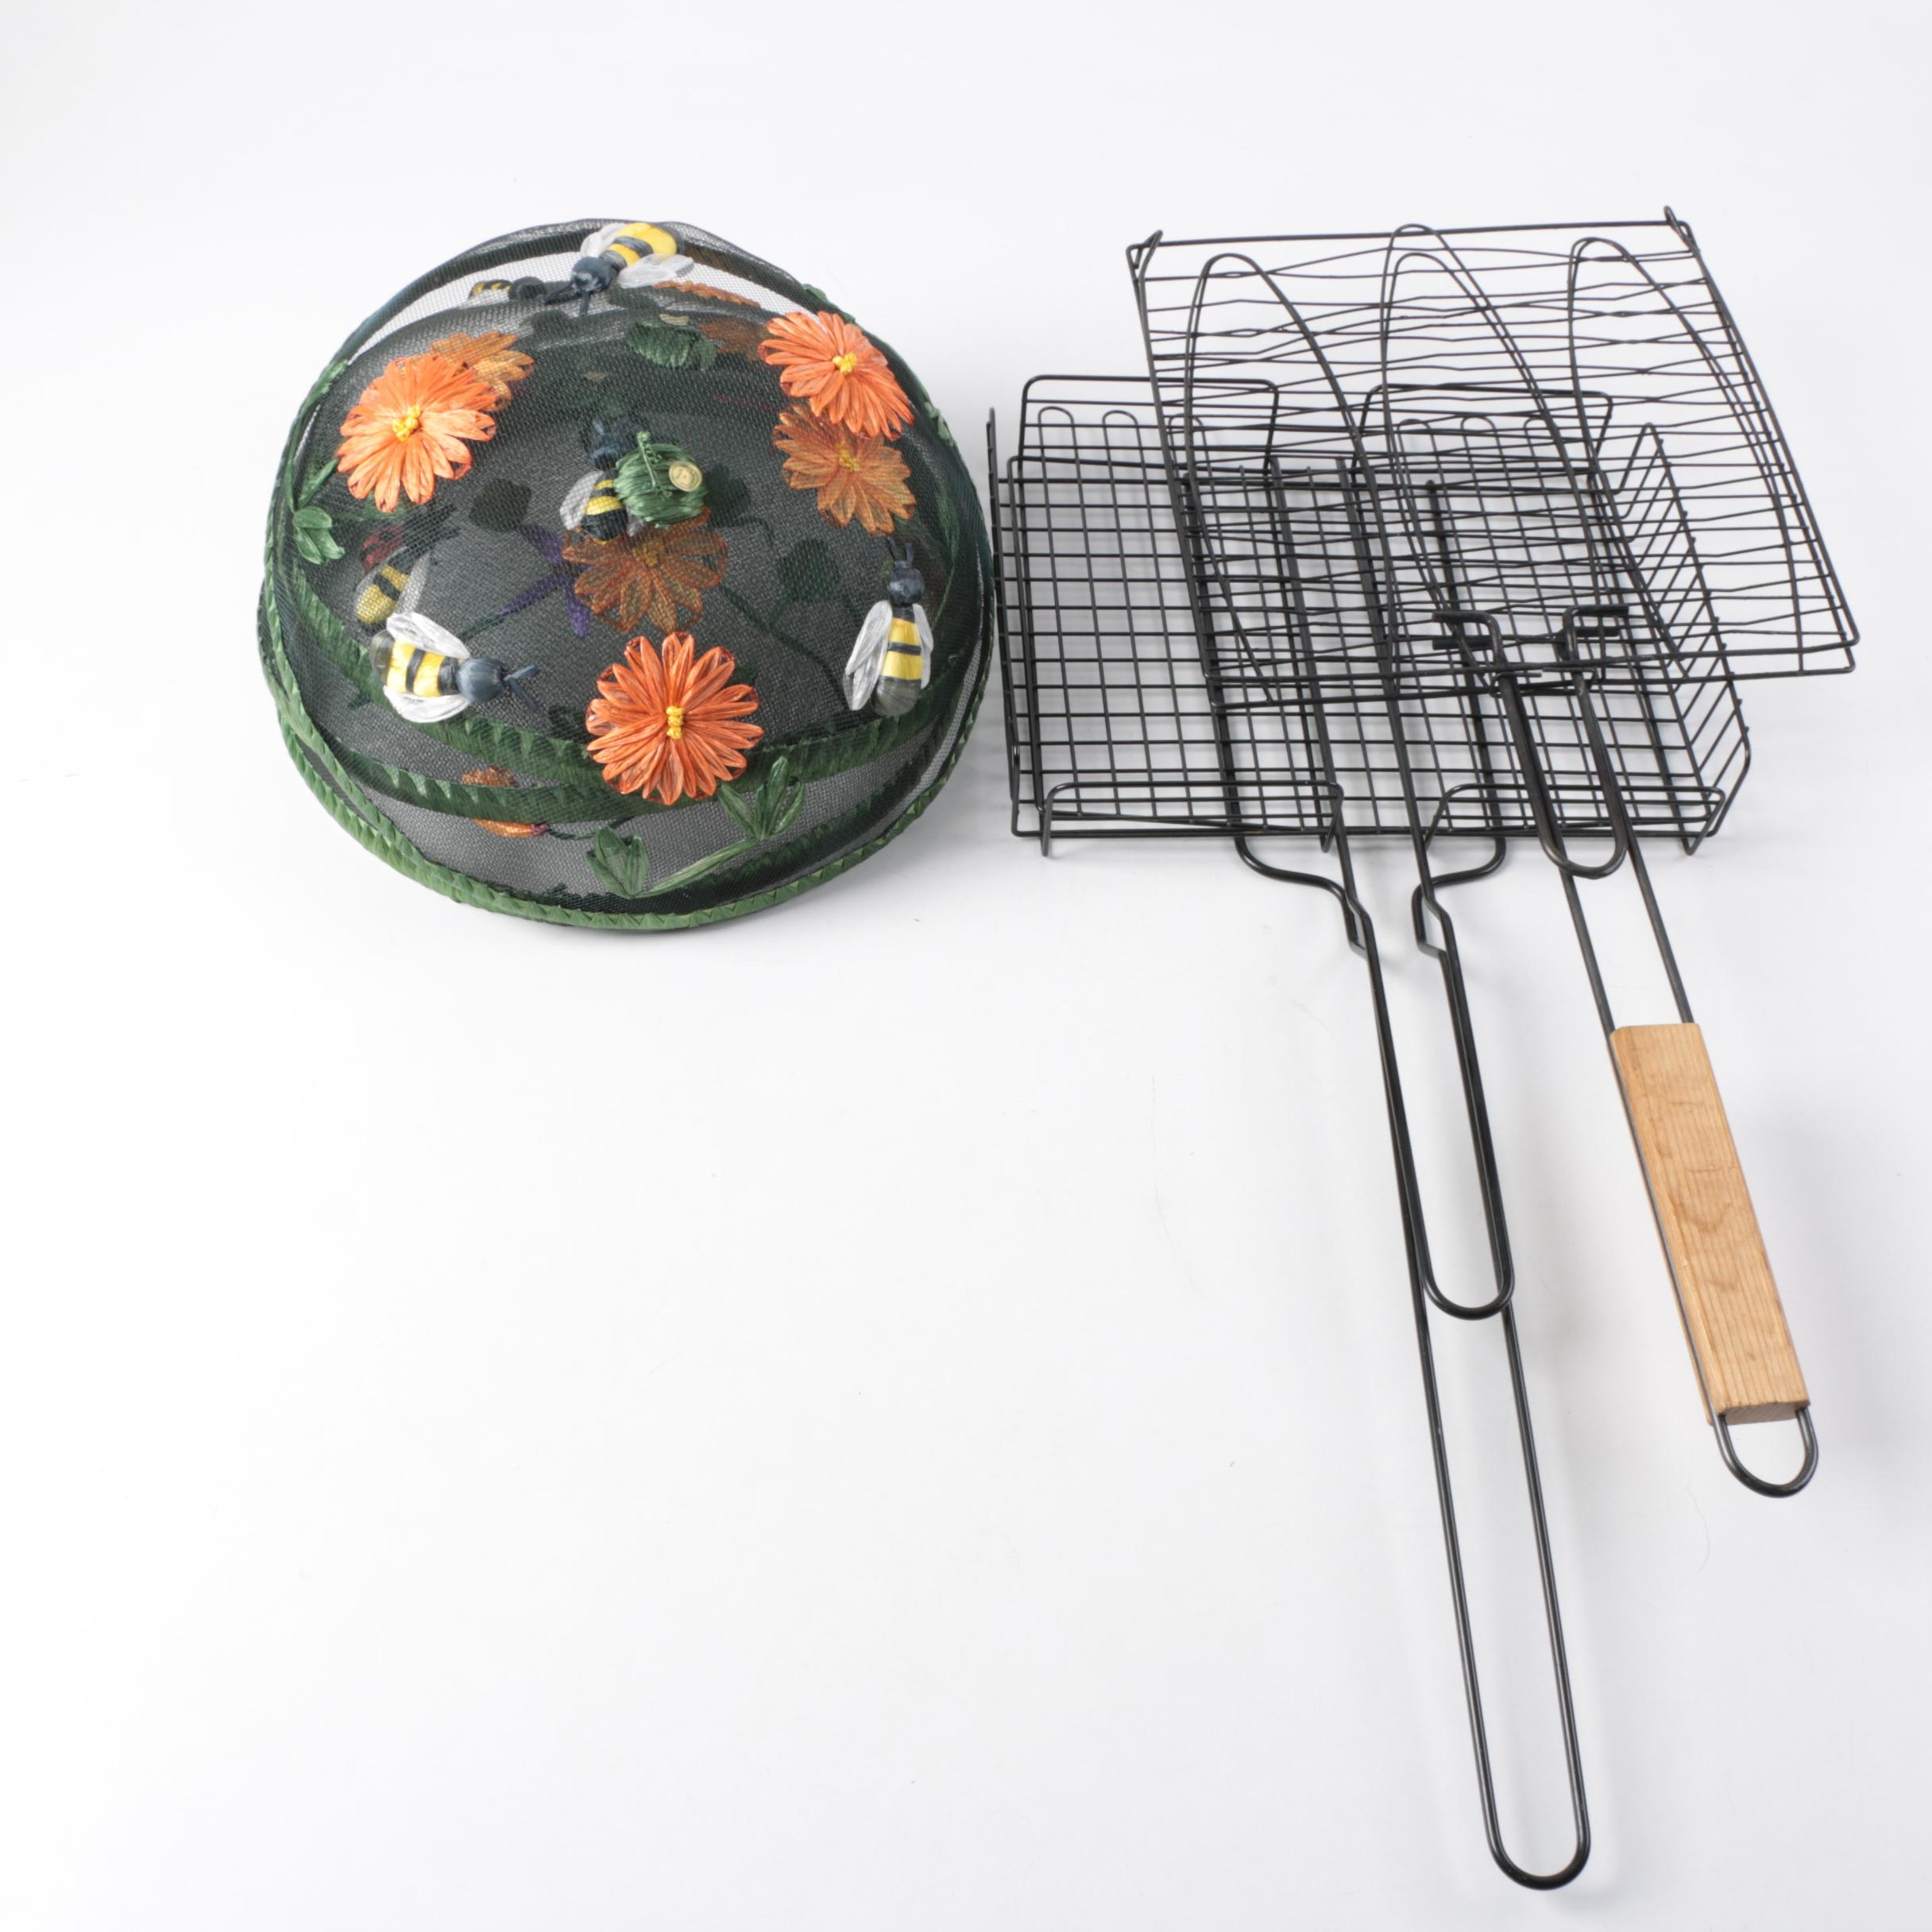 Barbecue Grilling Baskets and Decorative Food Protection Screens